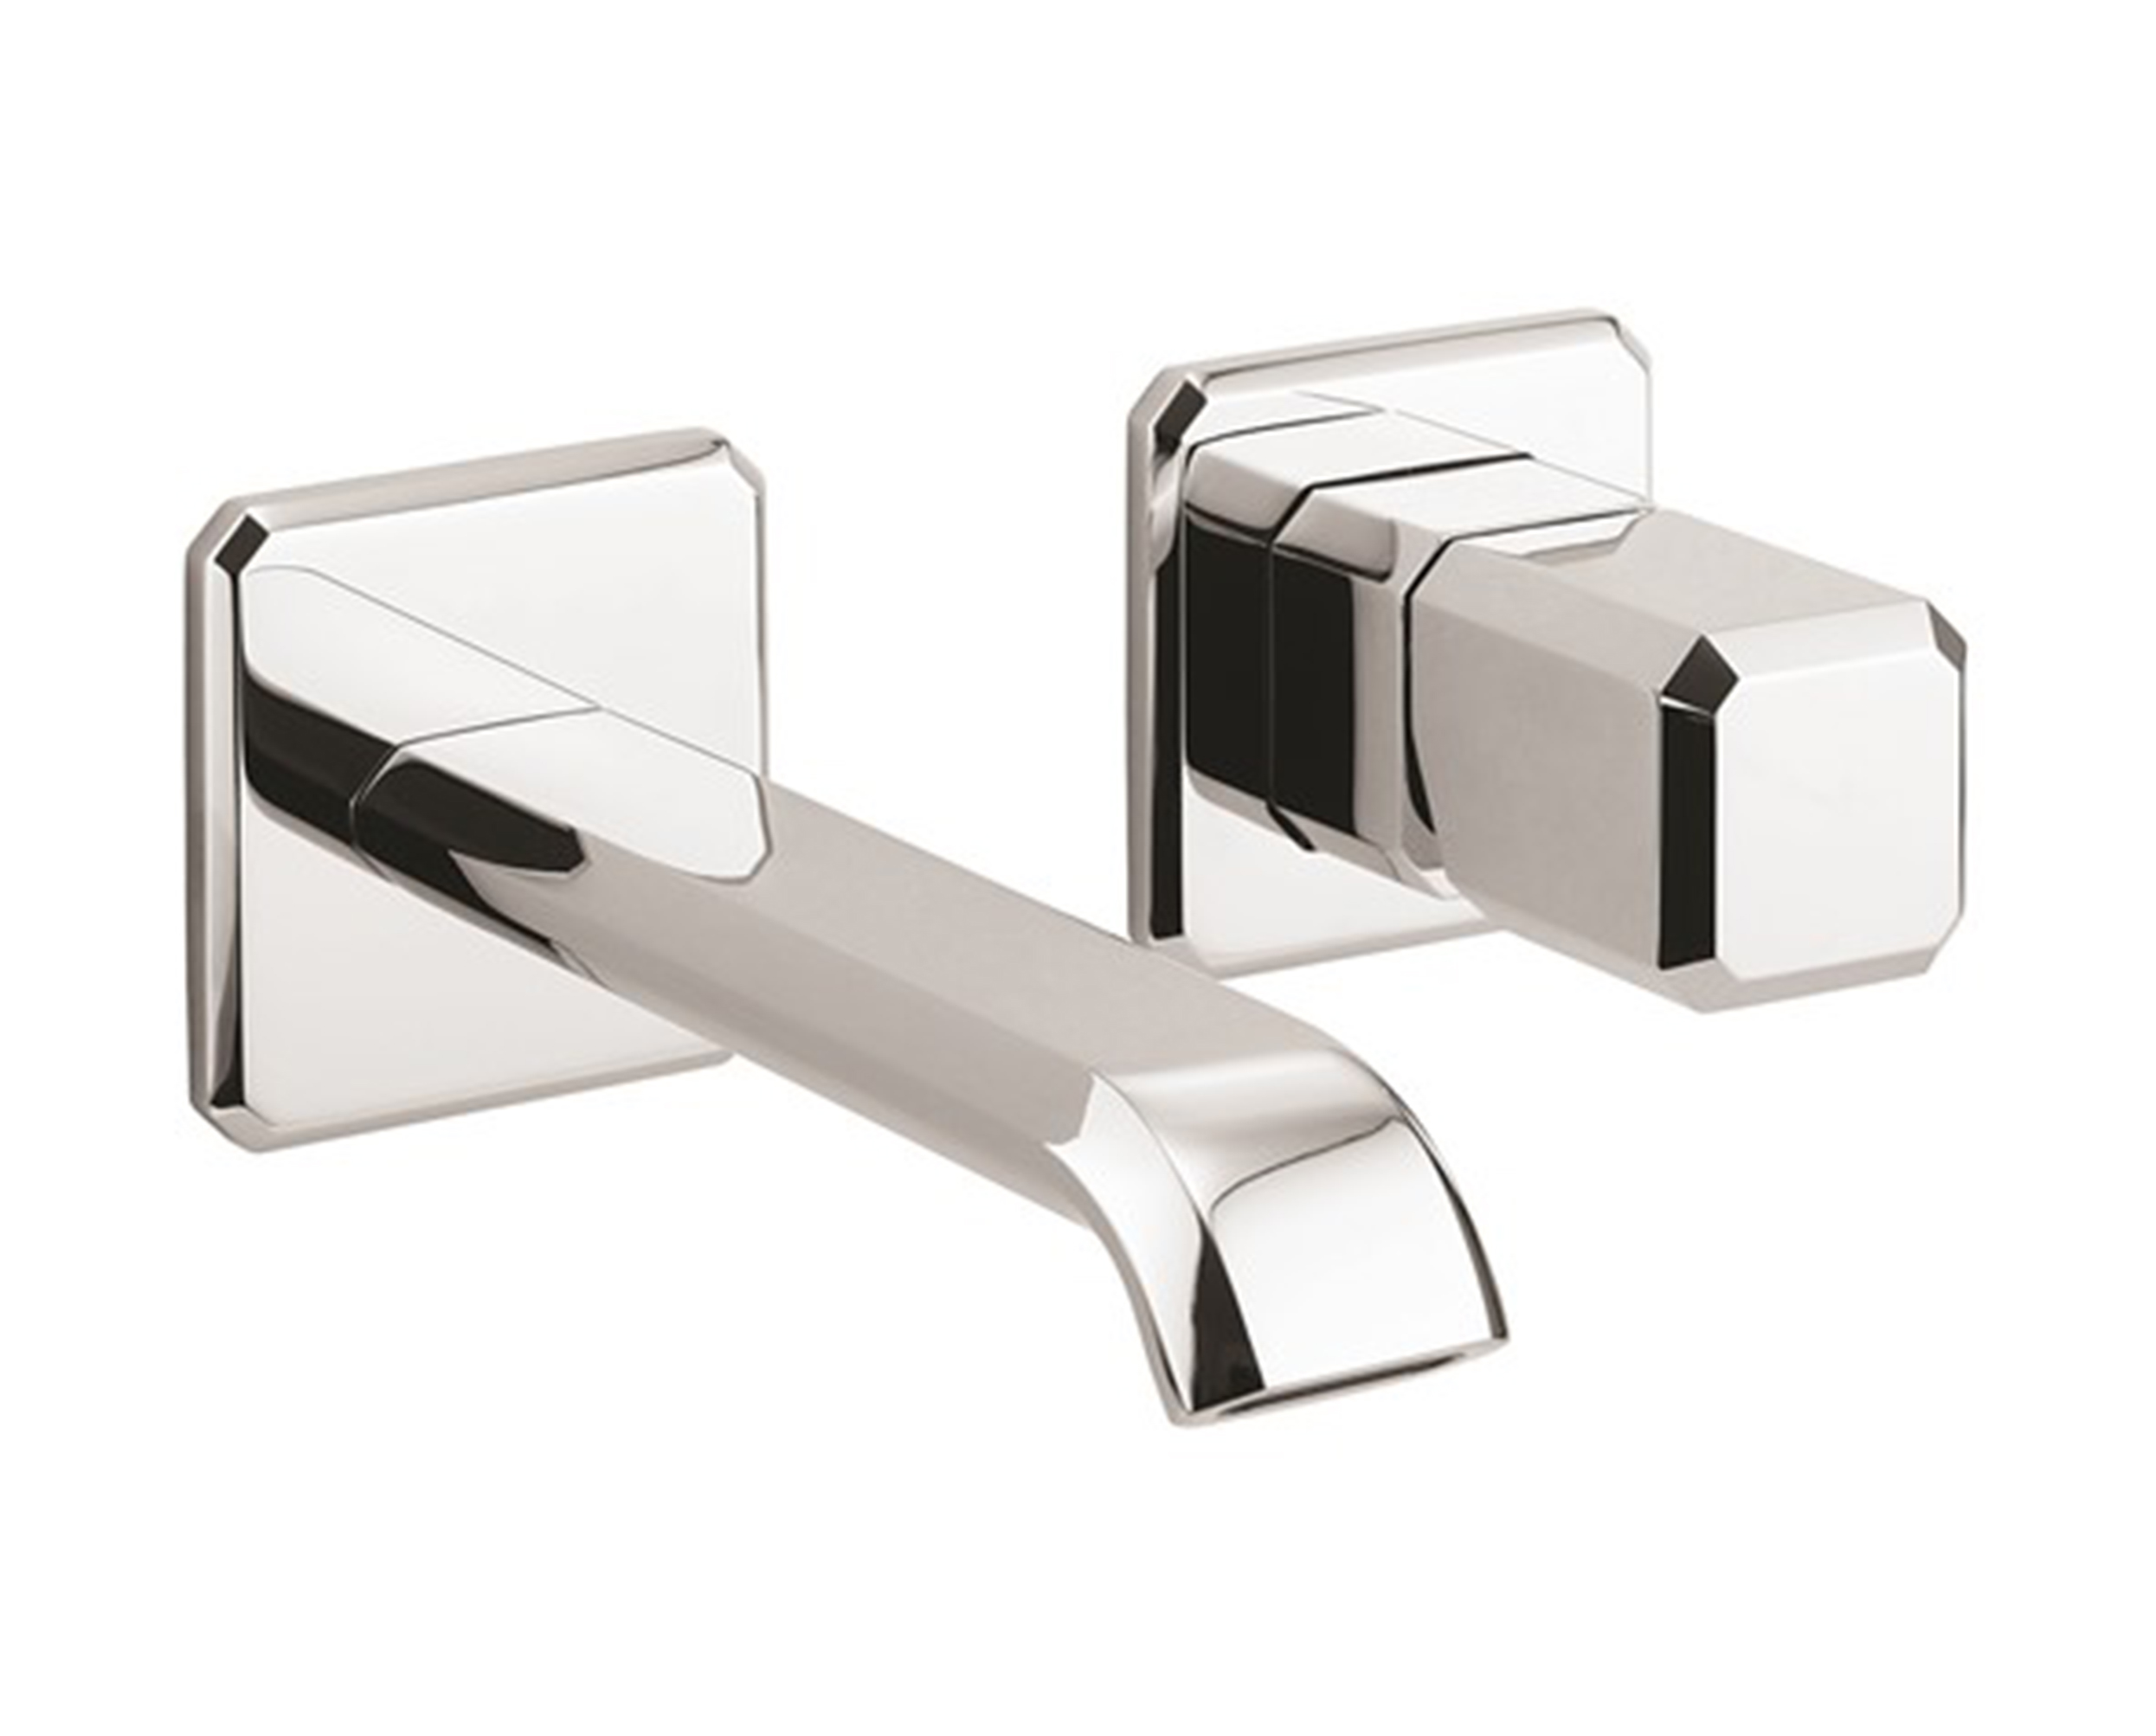 Sophisticated Taps to Enhance your Bathroom  Sophisticated Taps Sophisticated Taps to Enhance your Bathroom it120wnc w635 h476